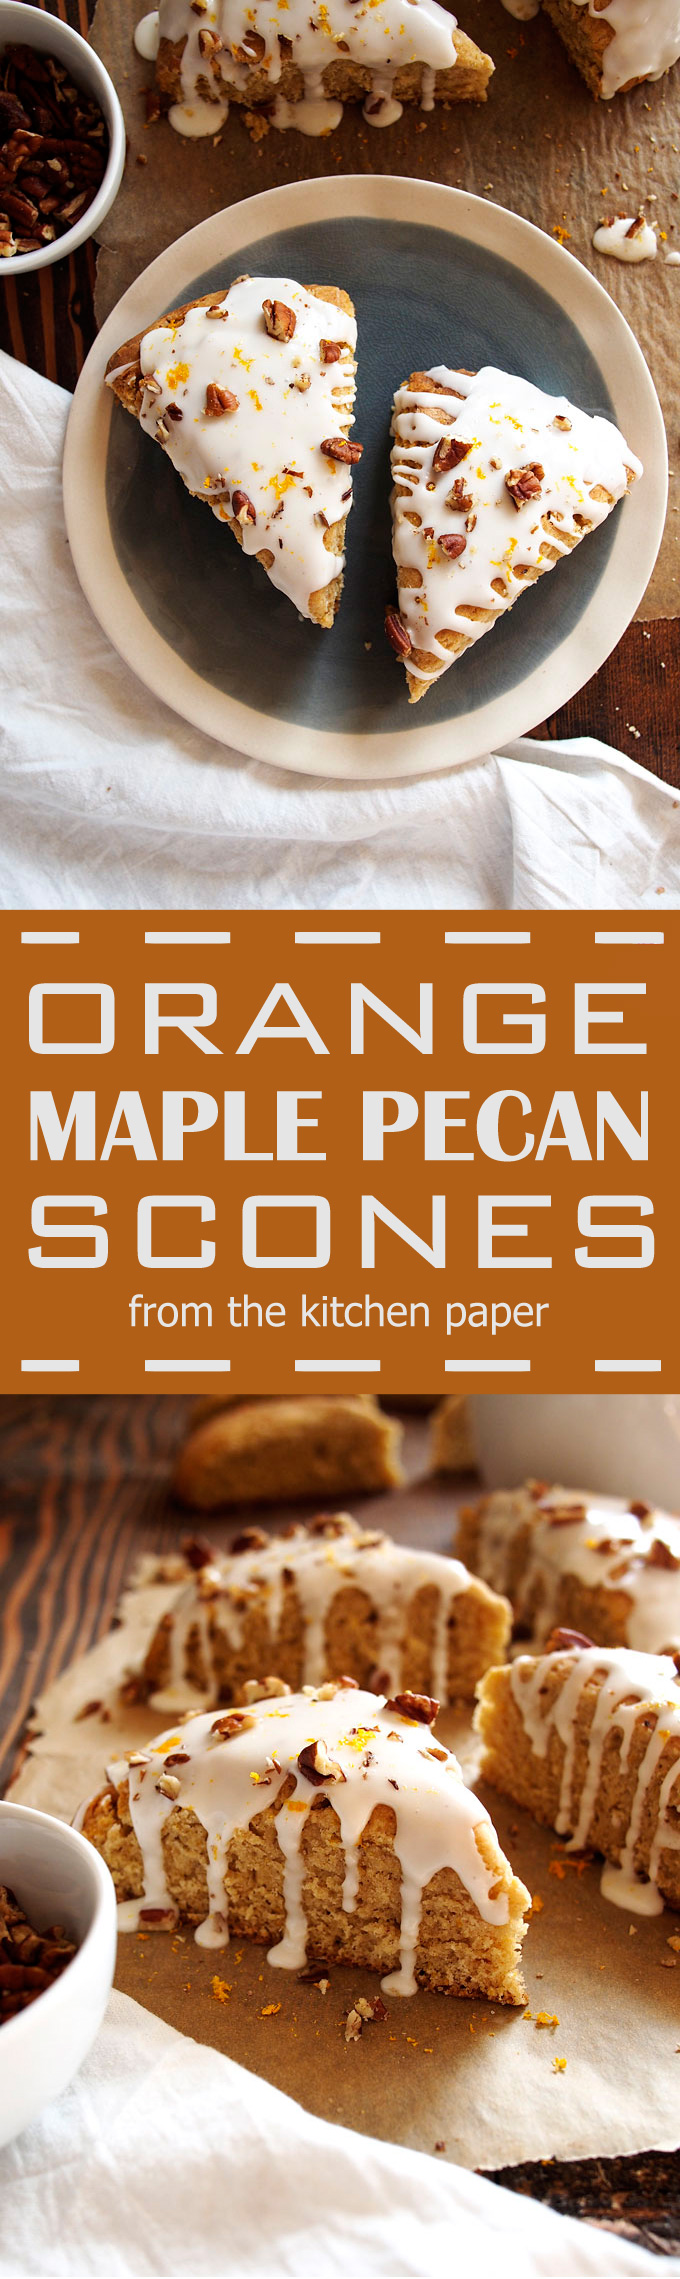 Orange Maple Pecan Scones | The Kitchen Paper